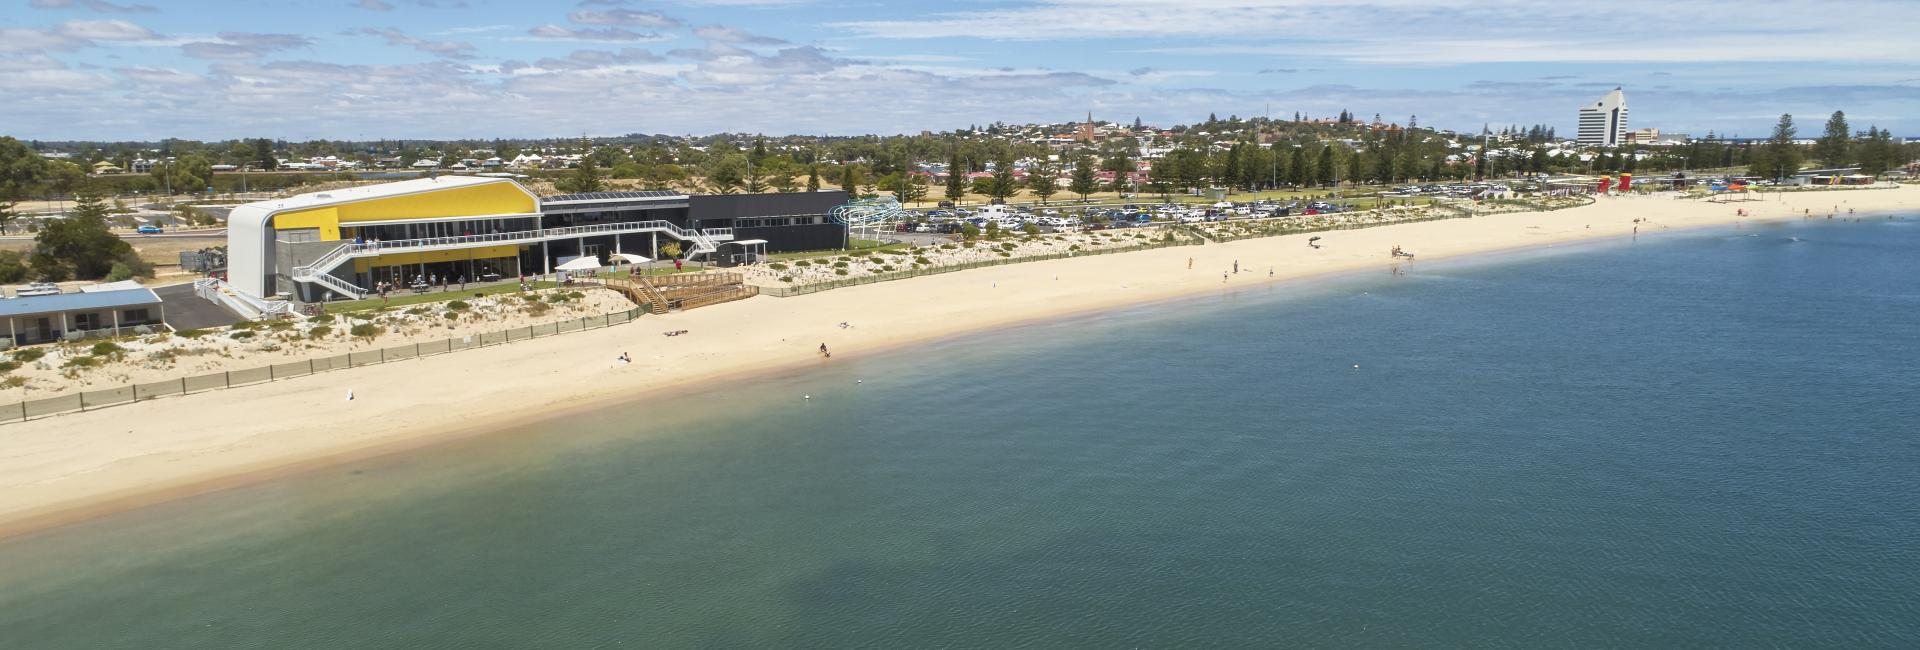 drone image showing Koombana Bay foreshore in Bunbury with city in background